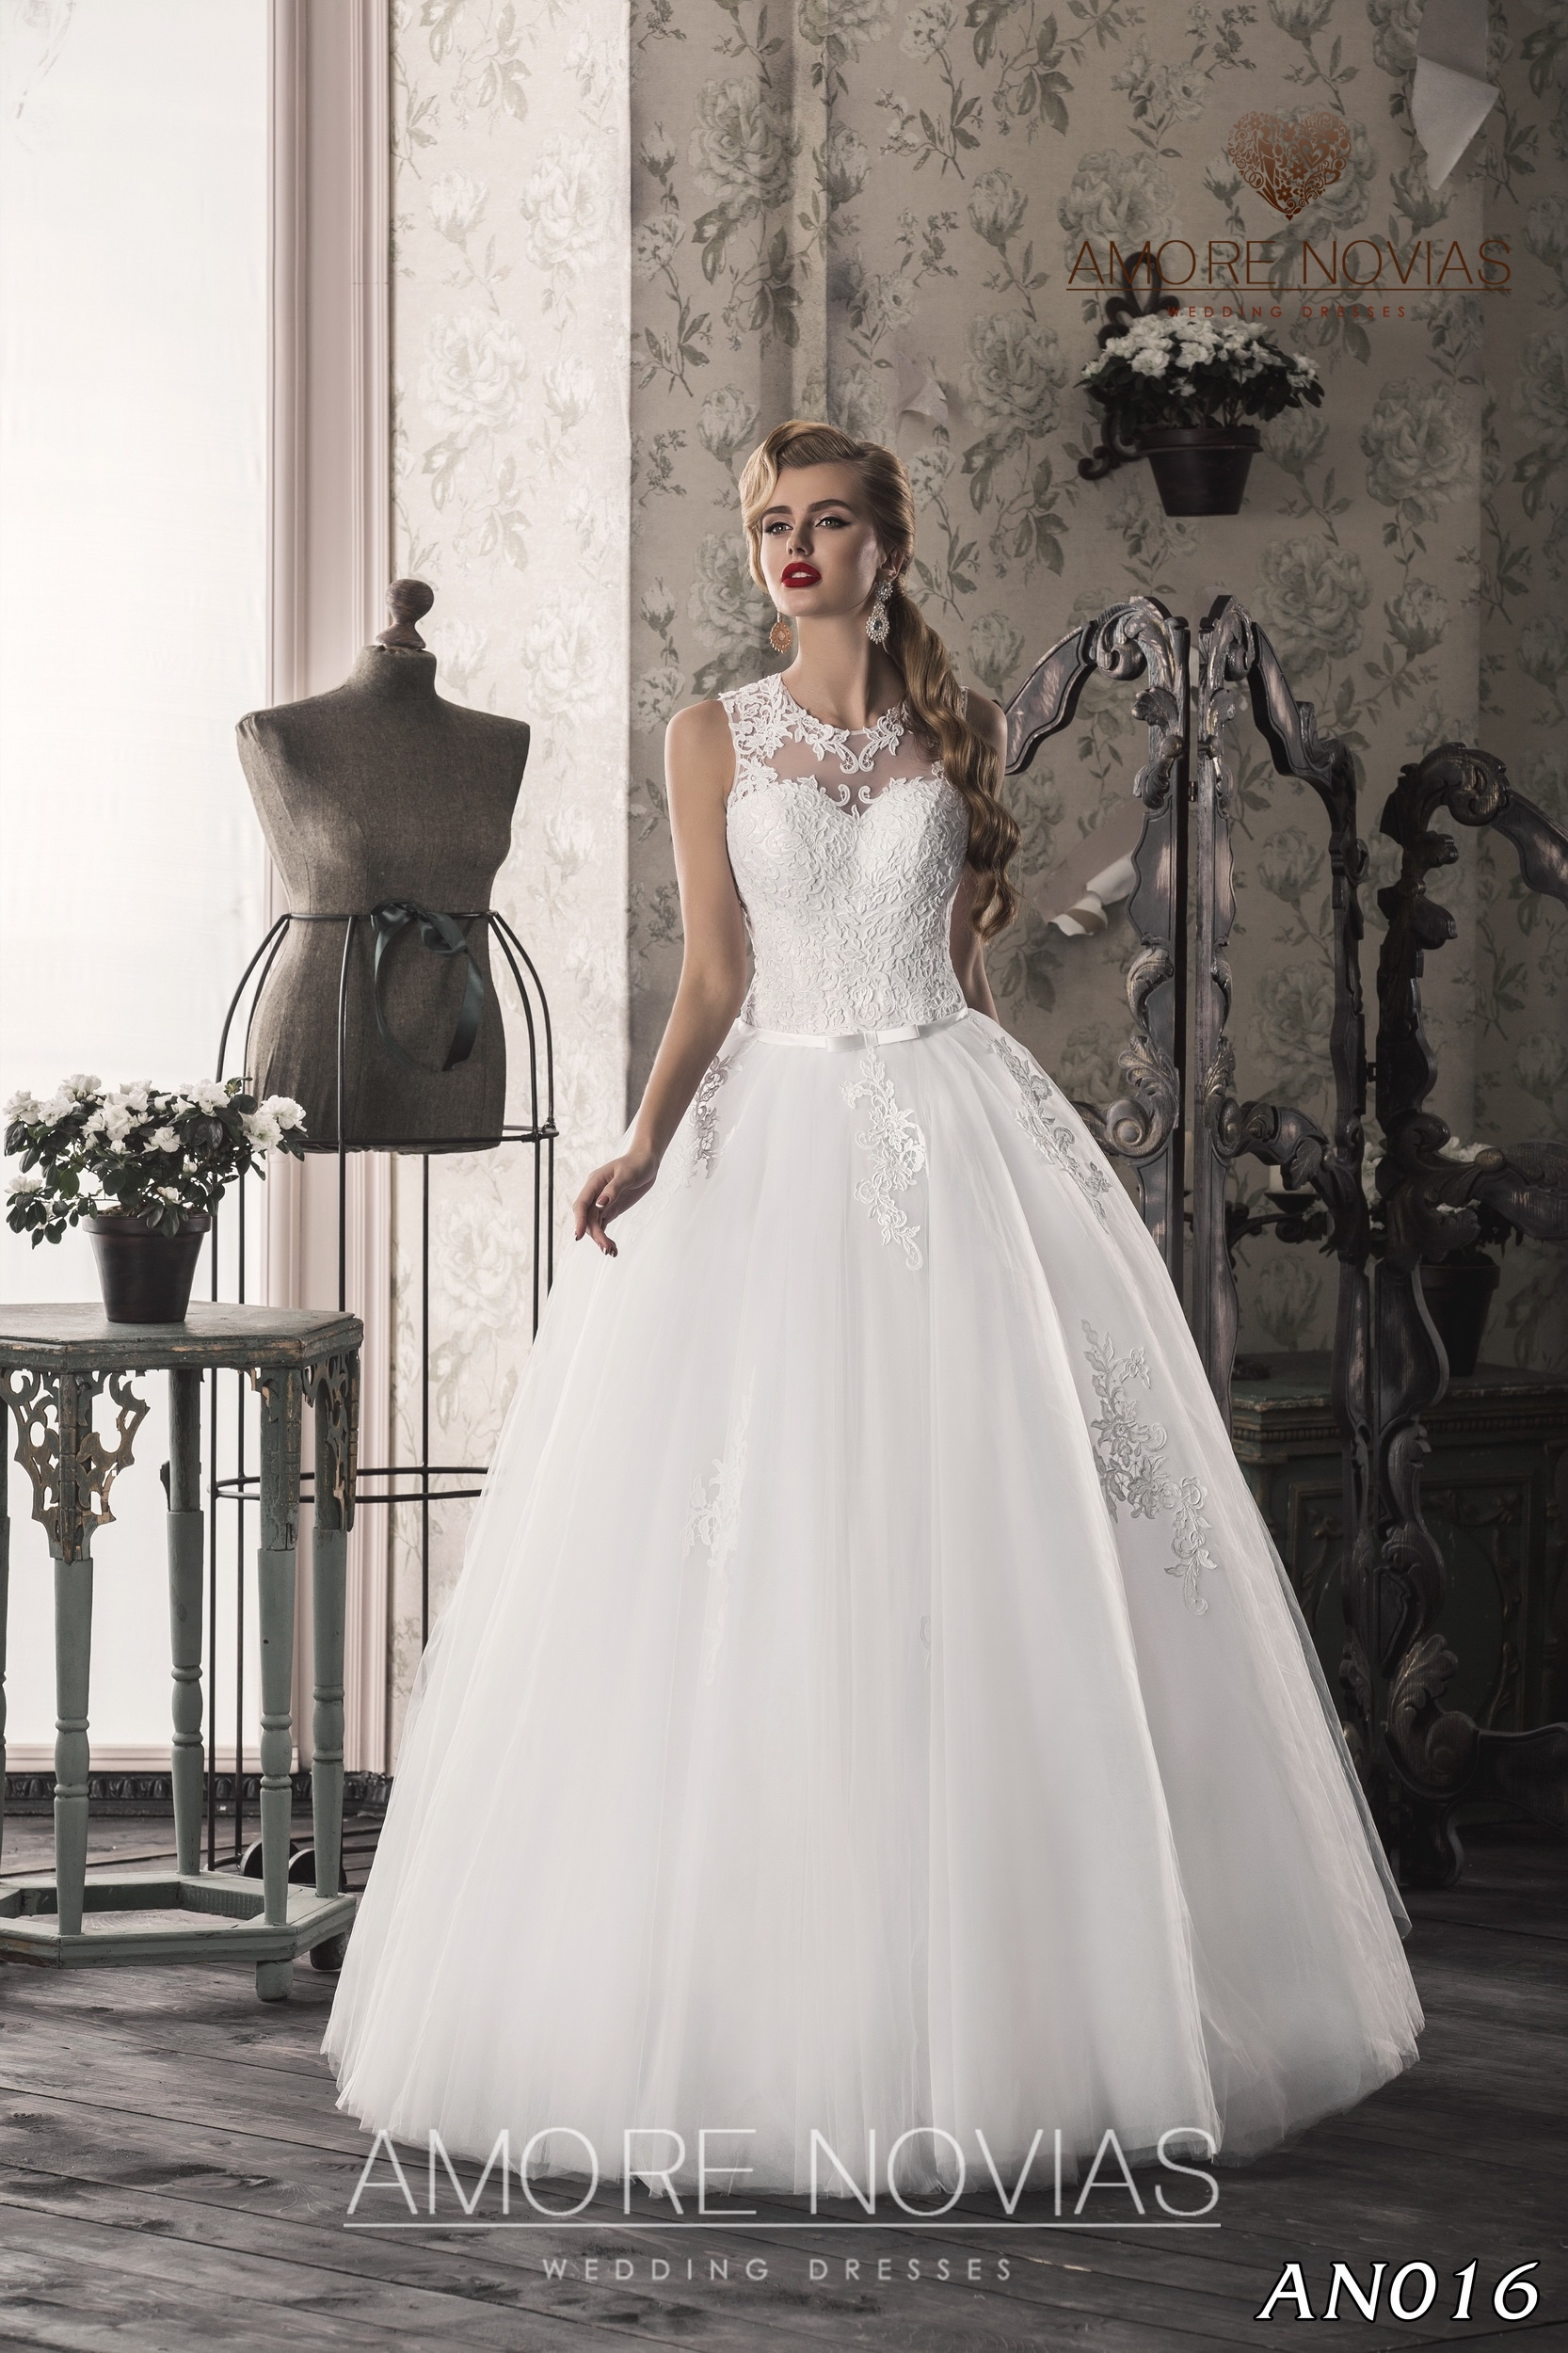 https://amore-novias.com/images/stories/virtuemart/product/an016.jpg